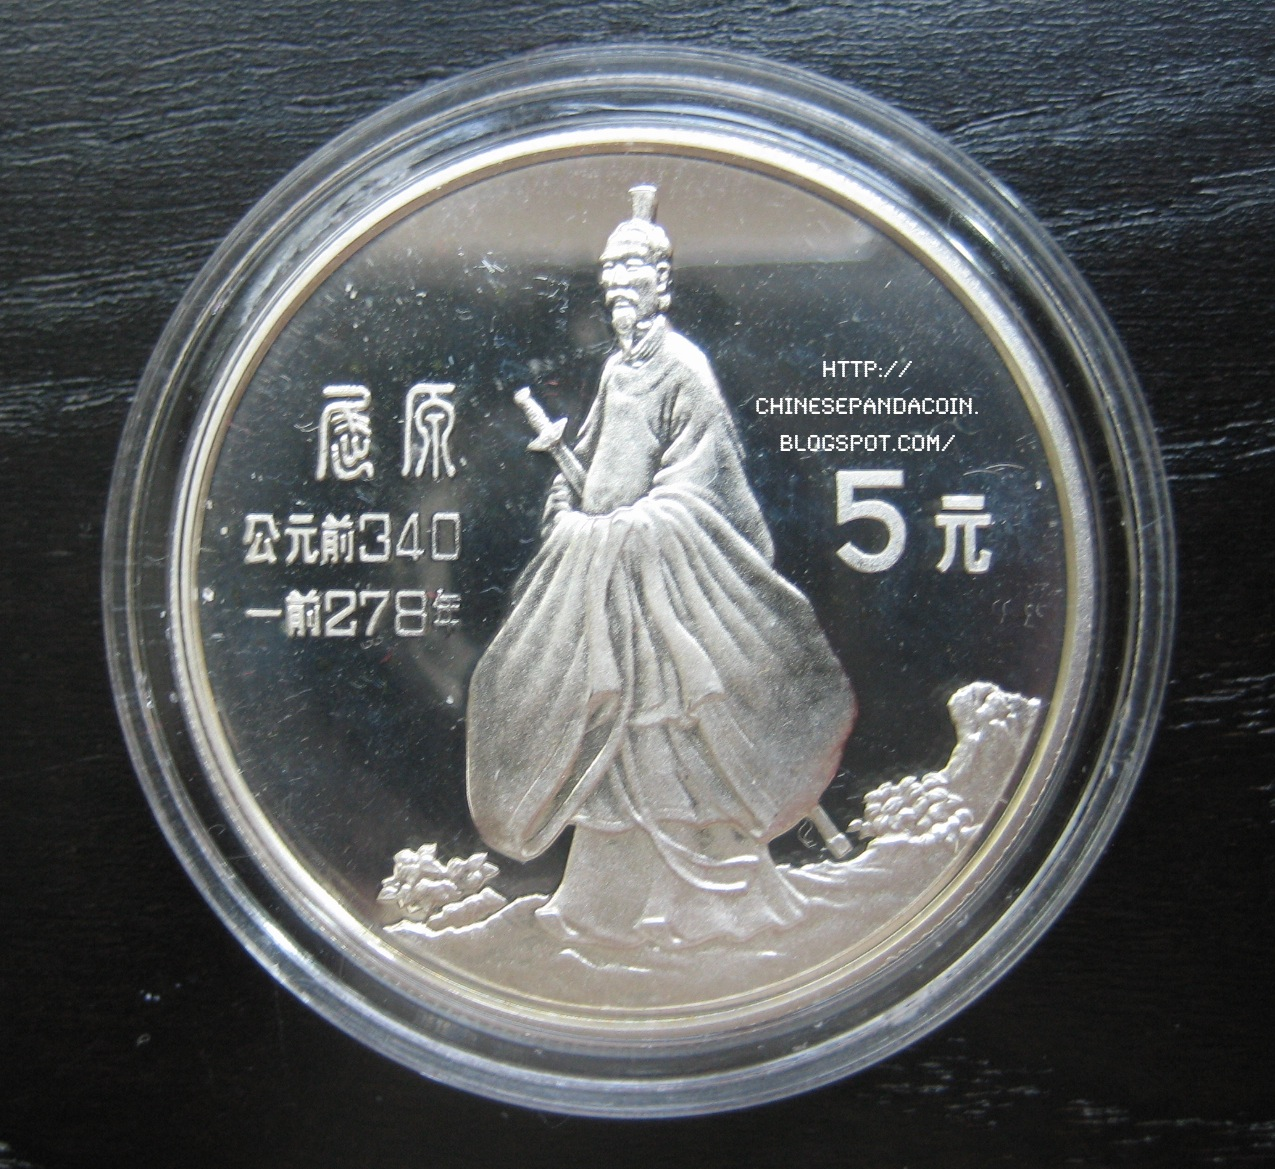 Chinese Panda Coin 1985 Chinese Historical Figures Silver Set